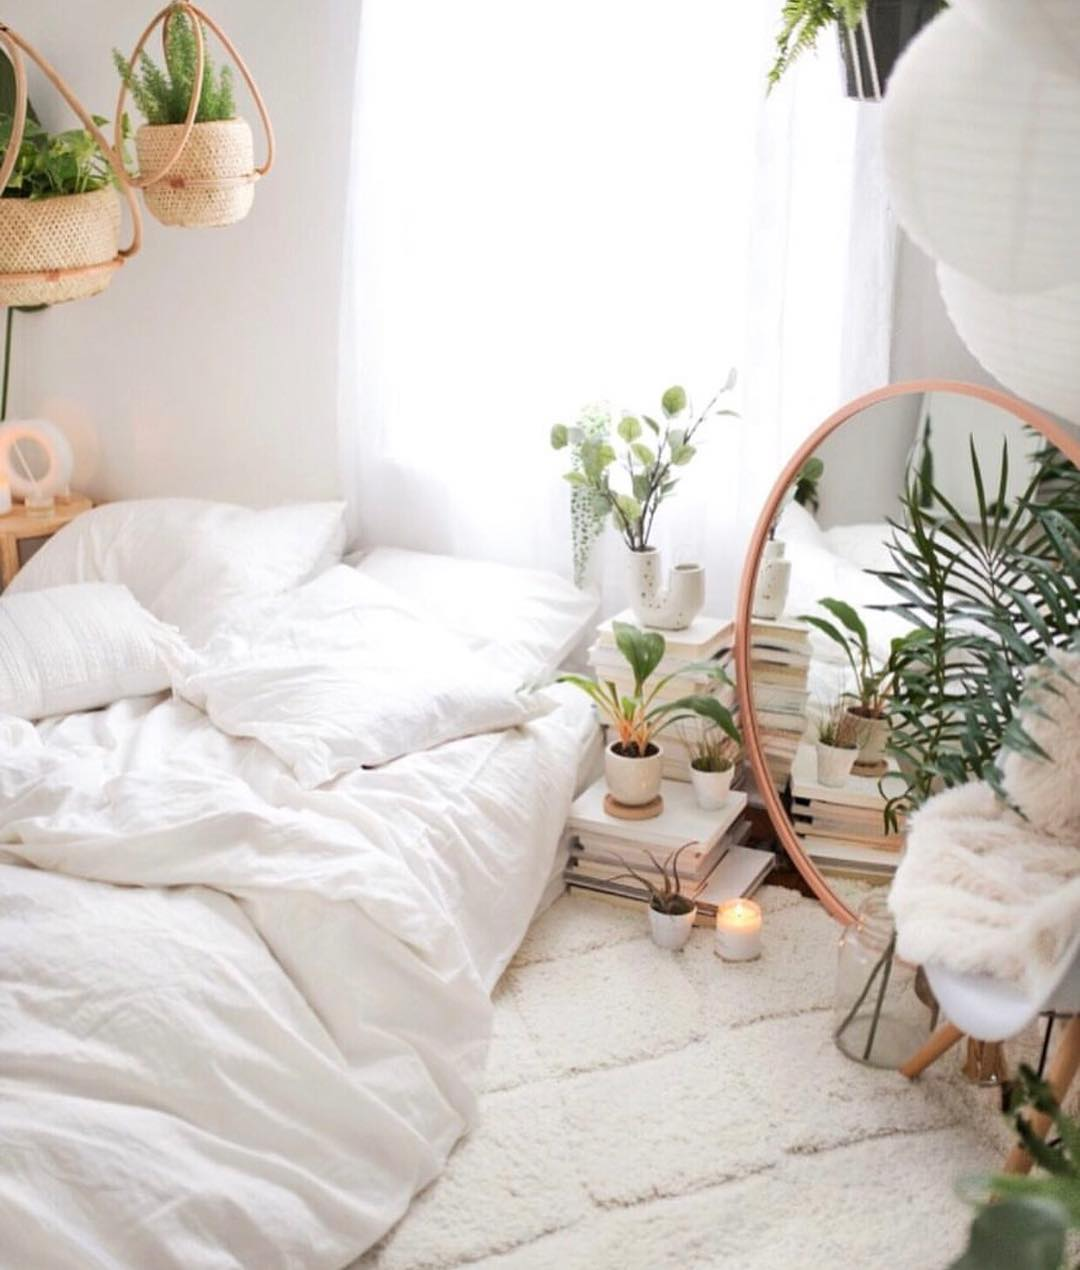 velvet minimal bedroom inspiration stoleninspirationcom nz fashion u0026 lifestyle blogger bedroom inspiration1 bedroom